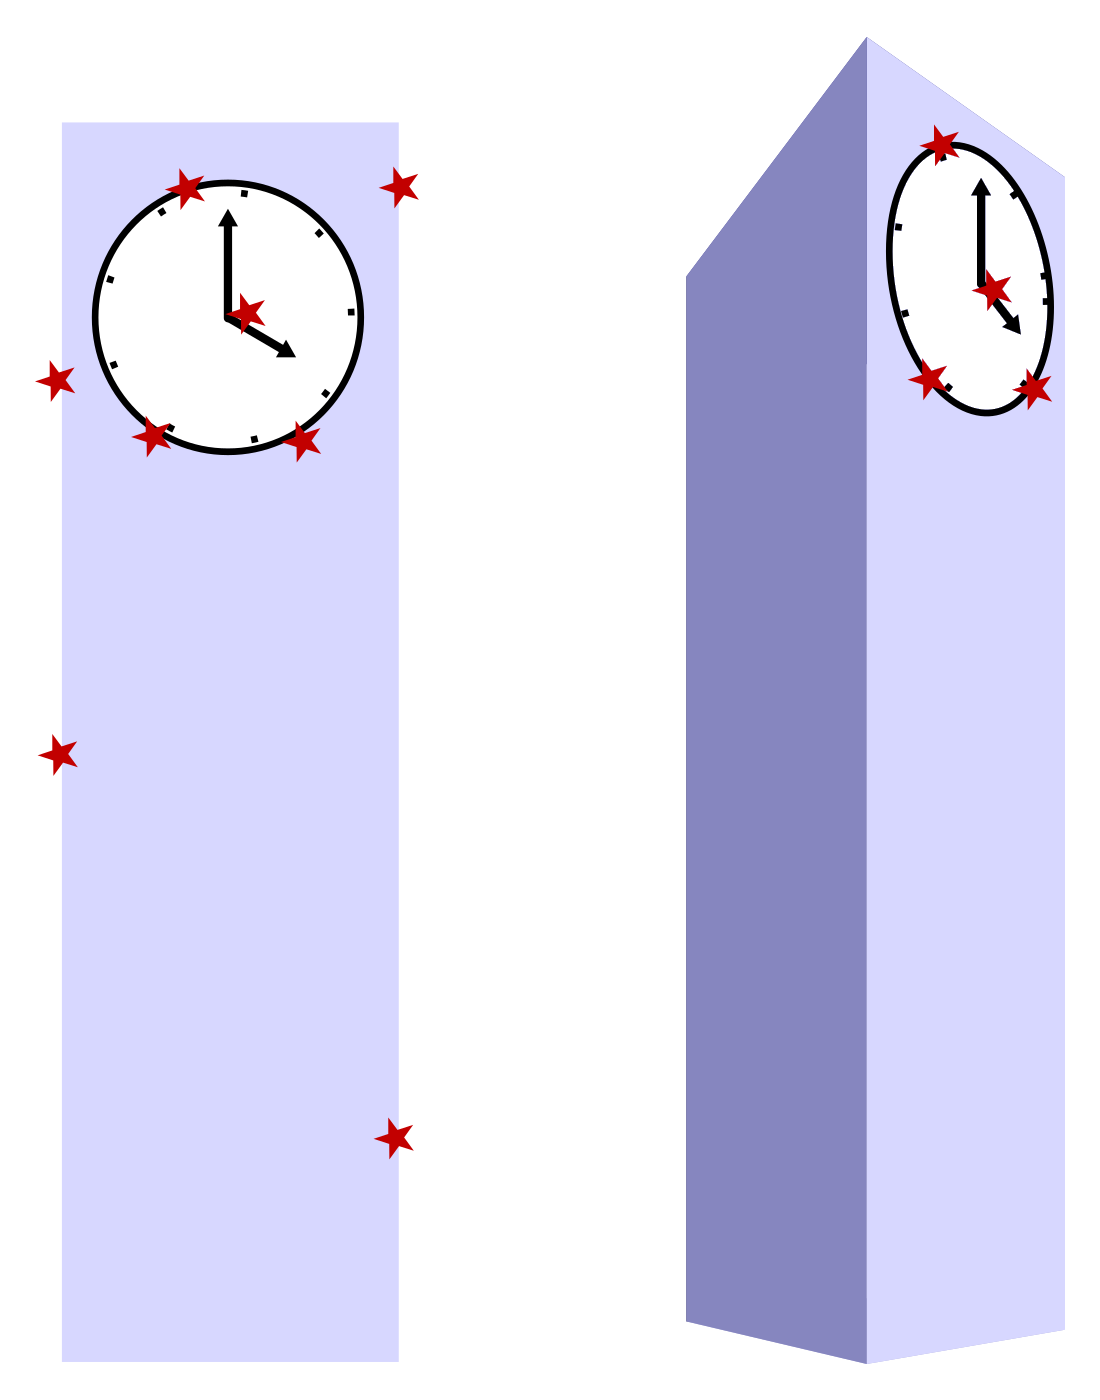 Views of a cartoon clock tower from two angles. Stars indicate some points where Gaussian difference maxima would appear due to high contrast between neighboring pixels. On the right, the uninformative keypoints have been removed.